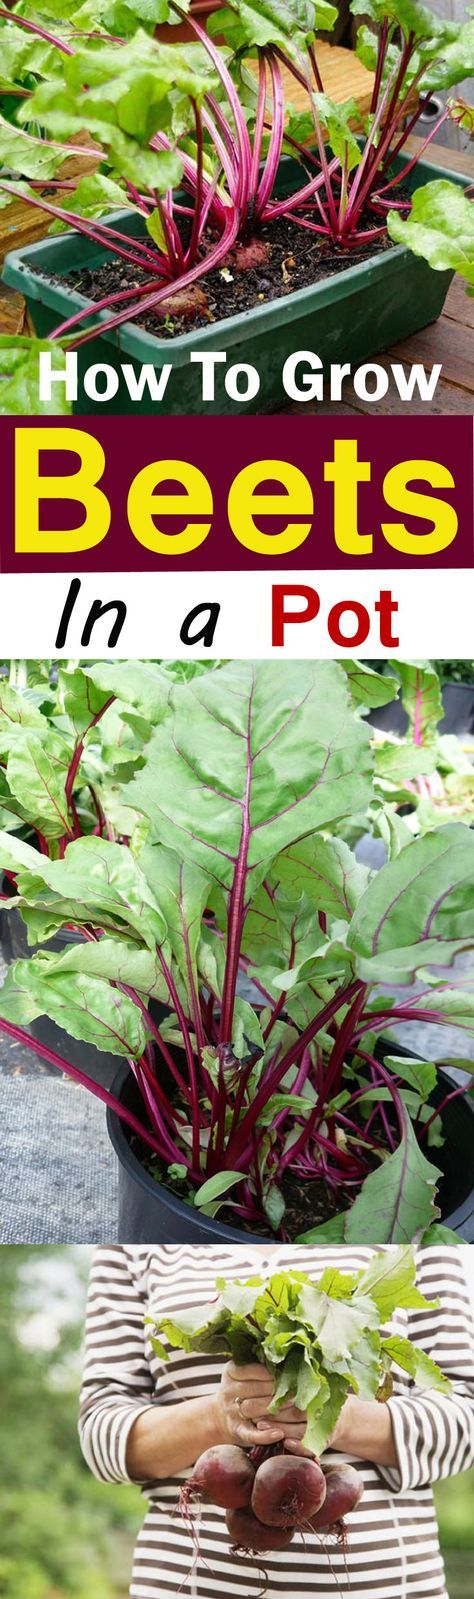 Growing Beets In Containers How To Grow Beets In Pots Growing Vegetables Growing Beets Container Gardening Vegetables